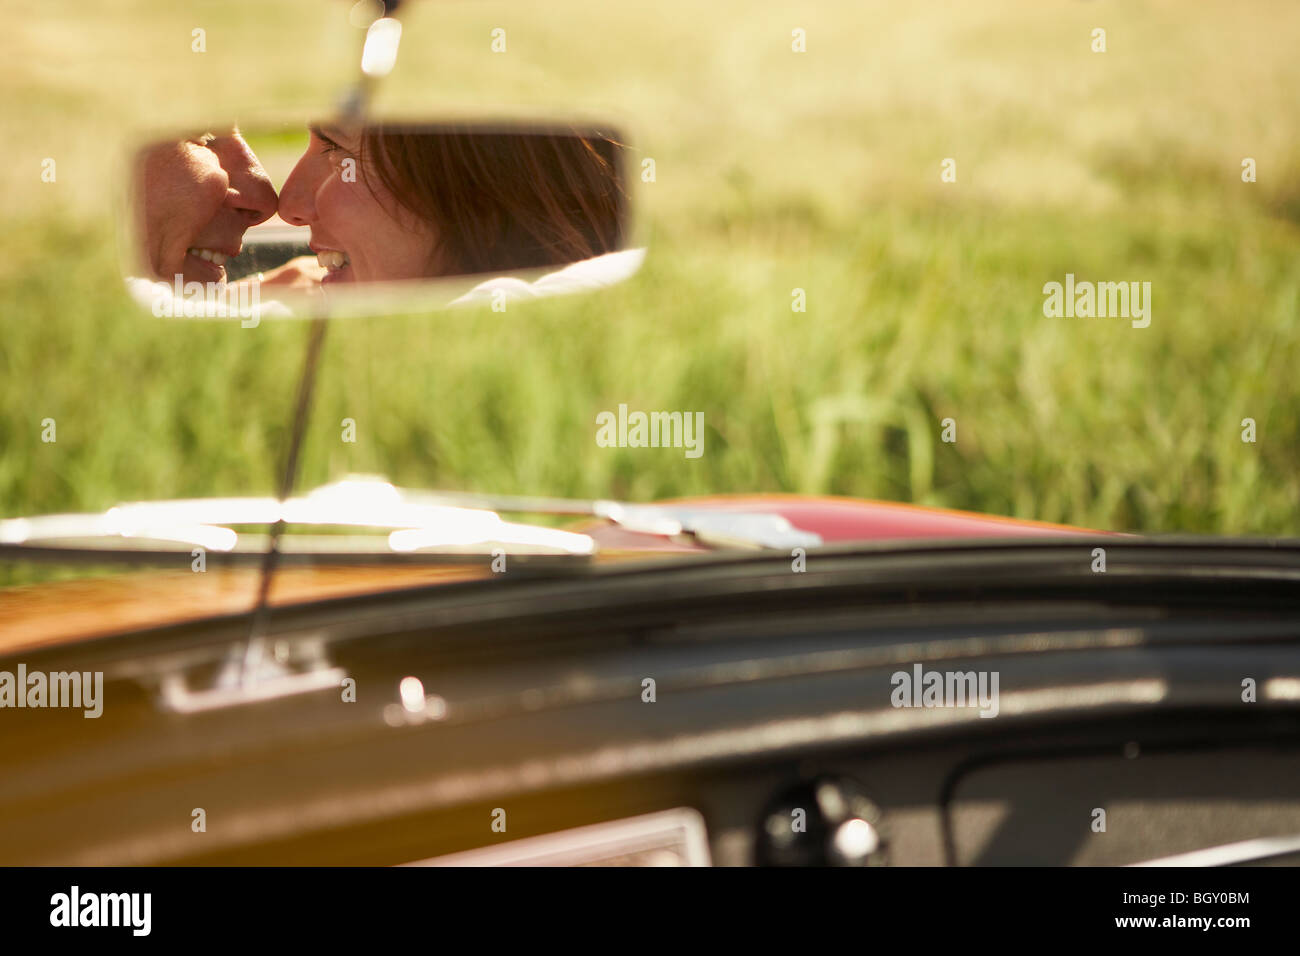 Couple in rear view mirror, will kiss - Stock Image